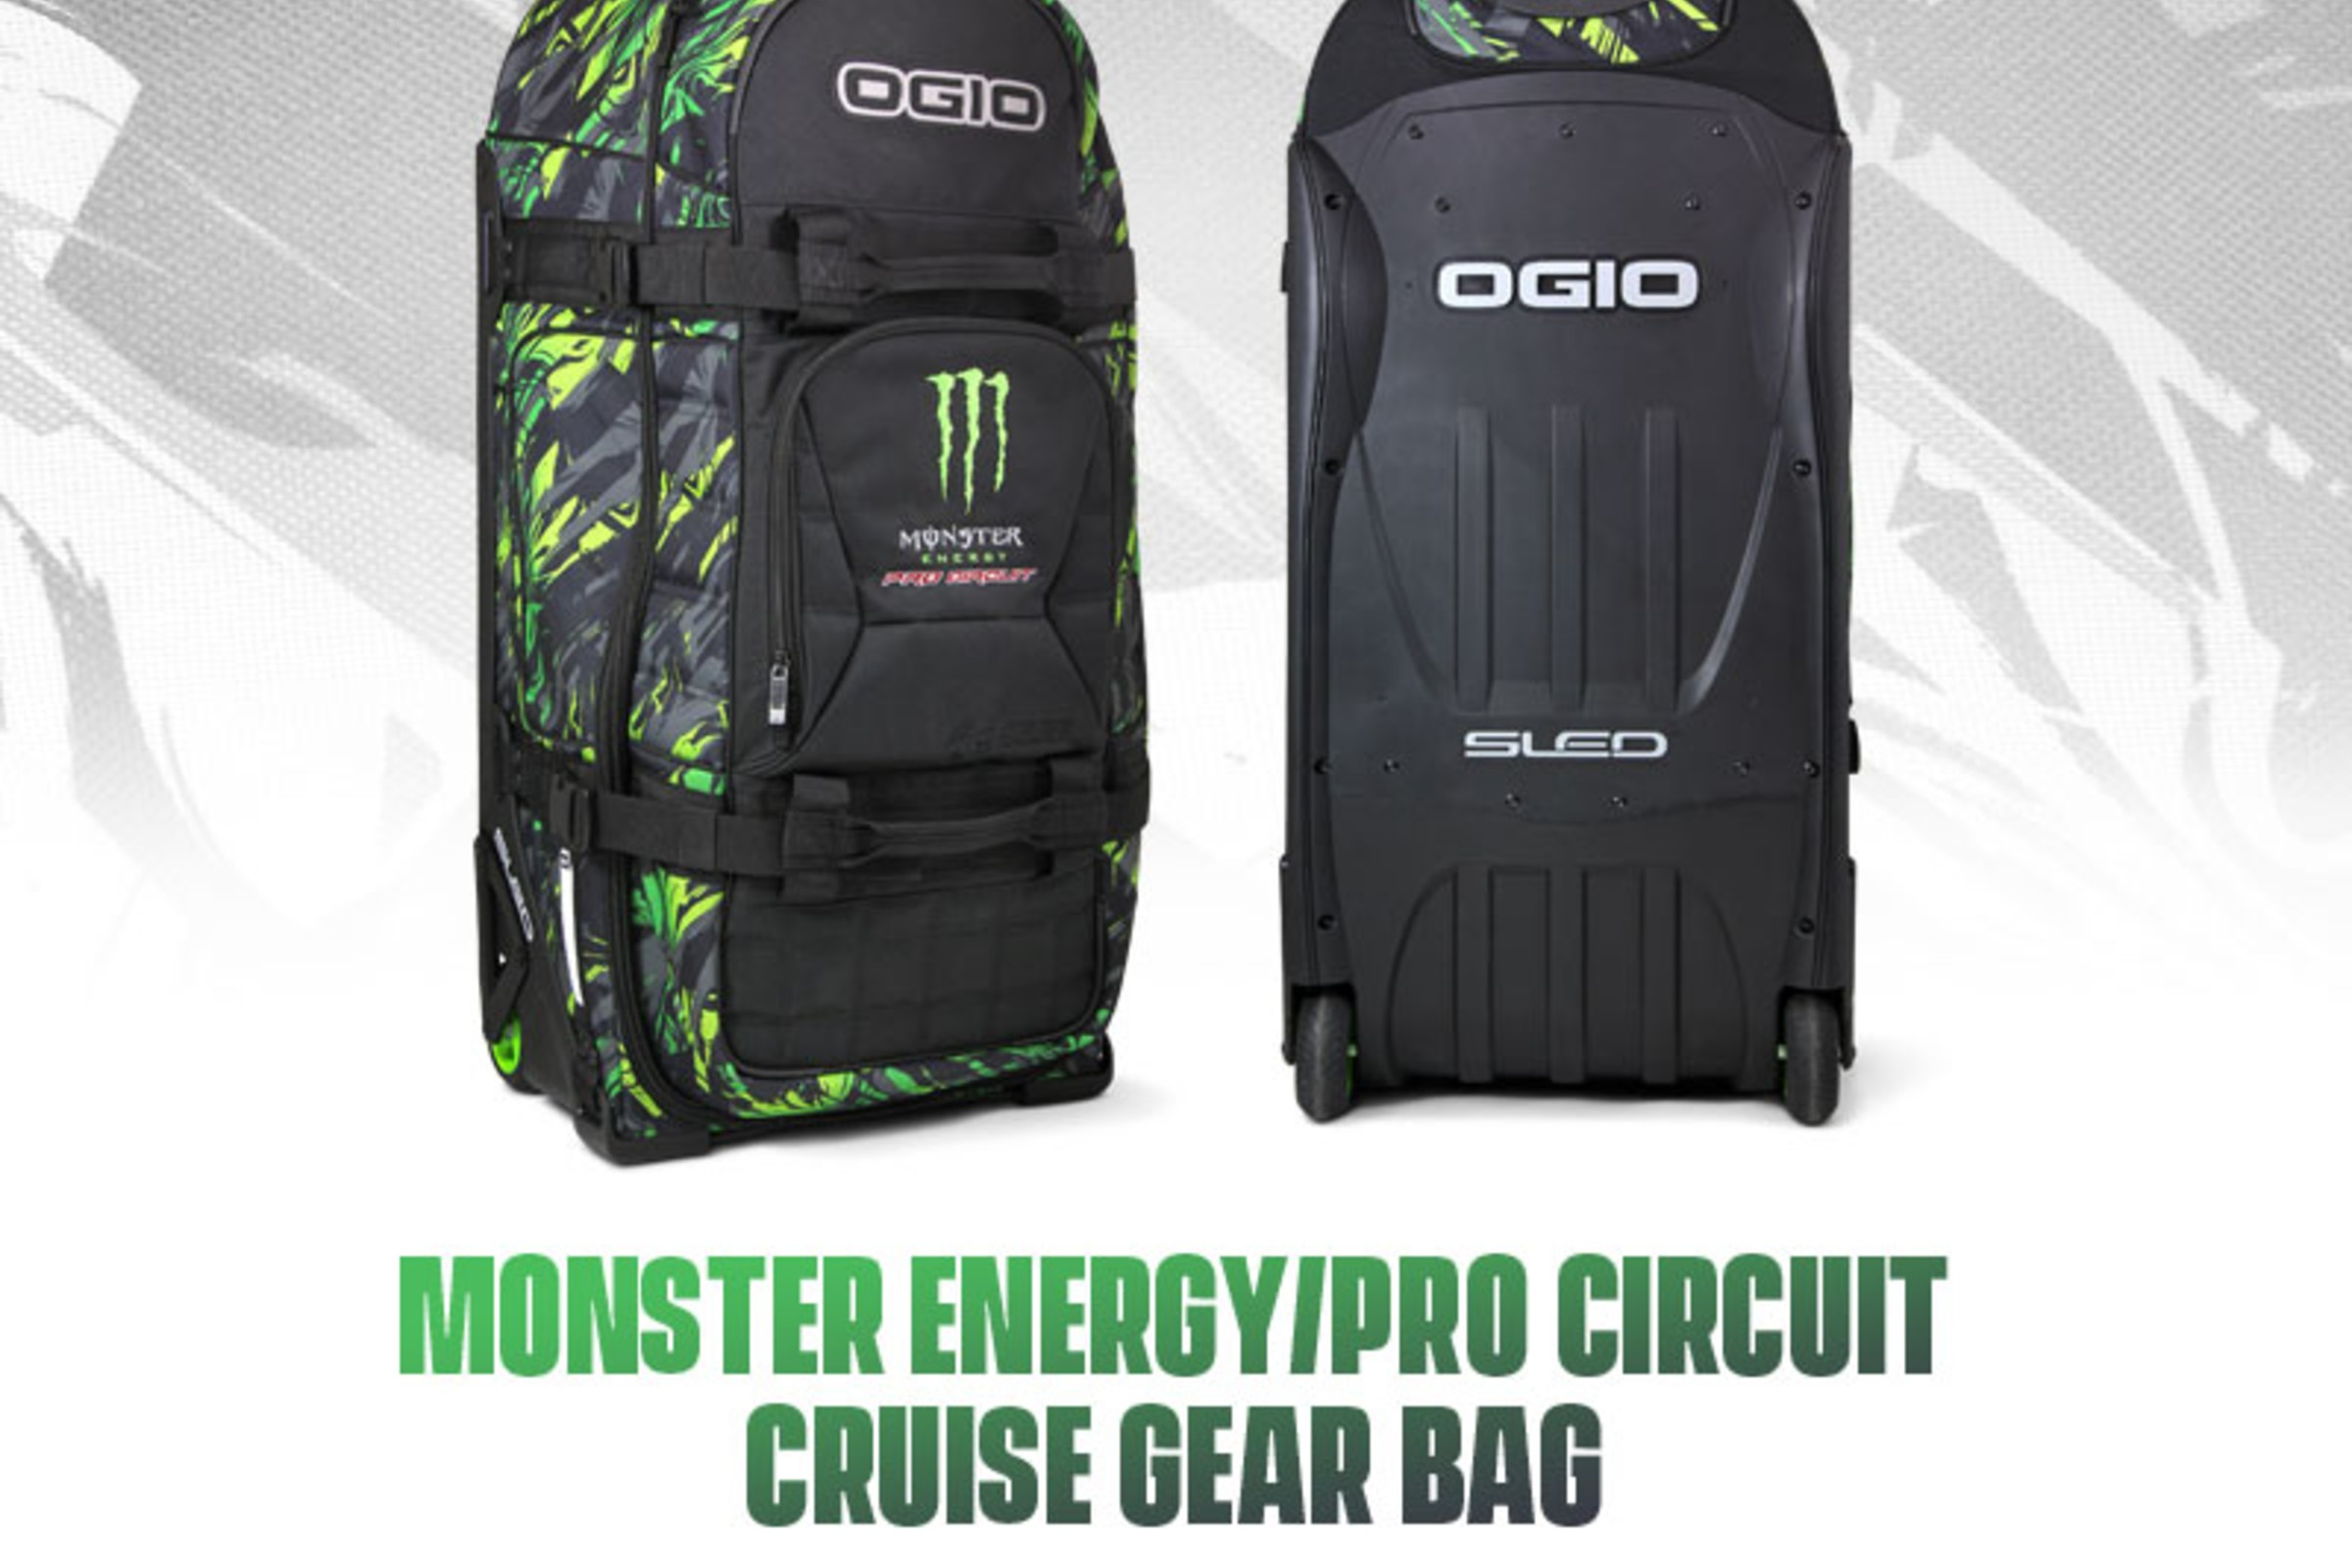 Monster Energy/Pro Circuit Cruise Gear Bag Now Available